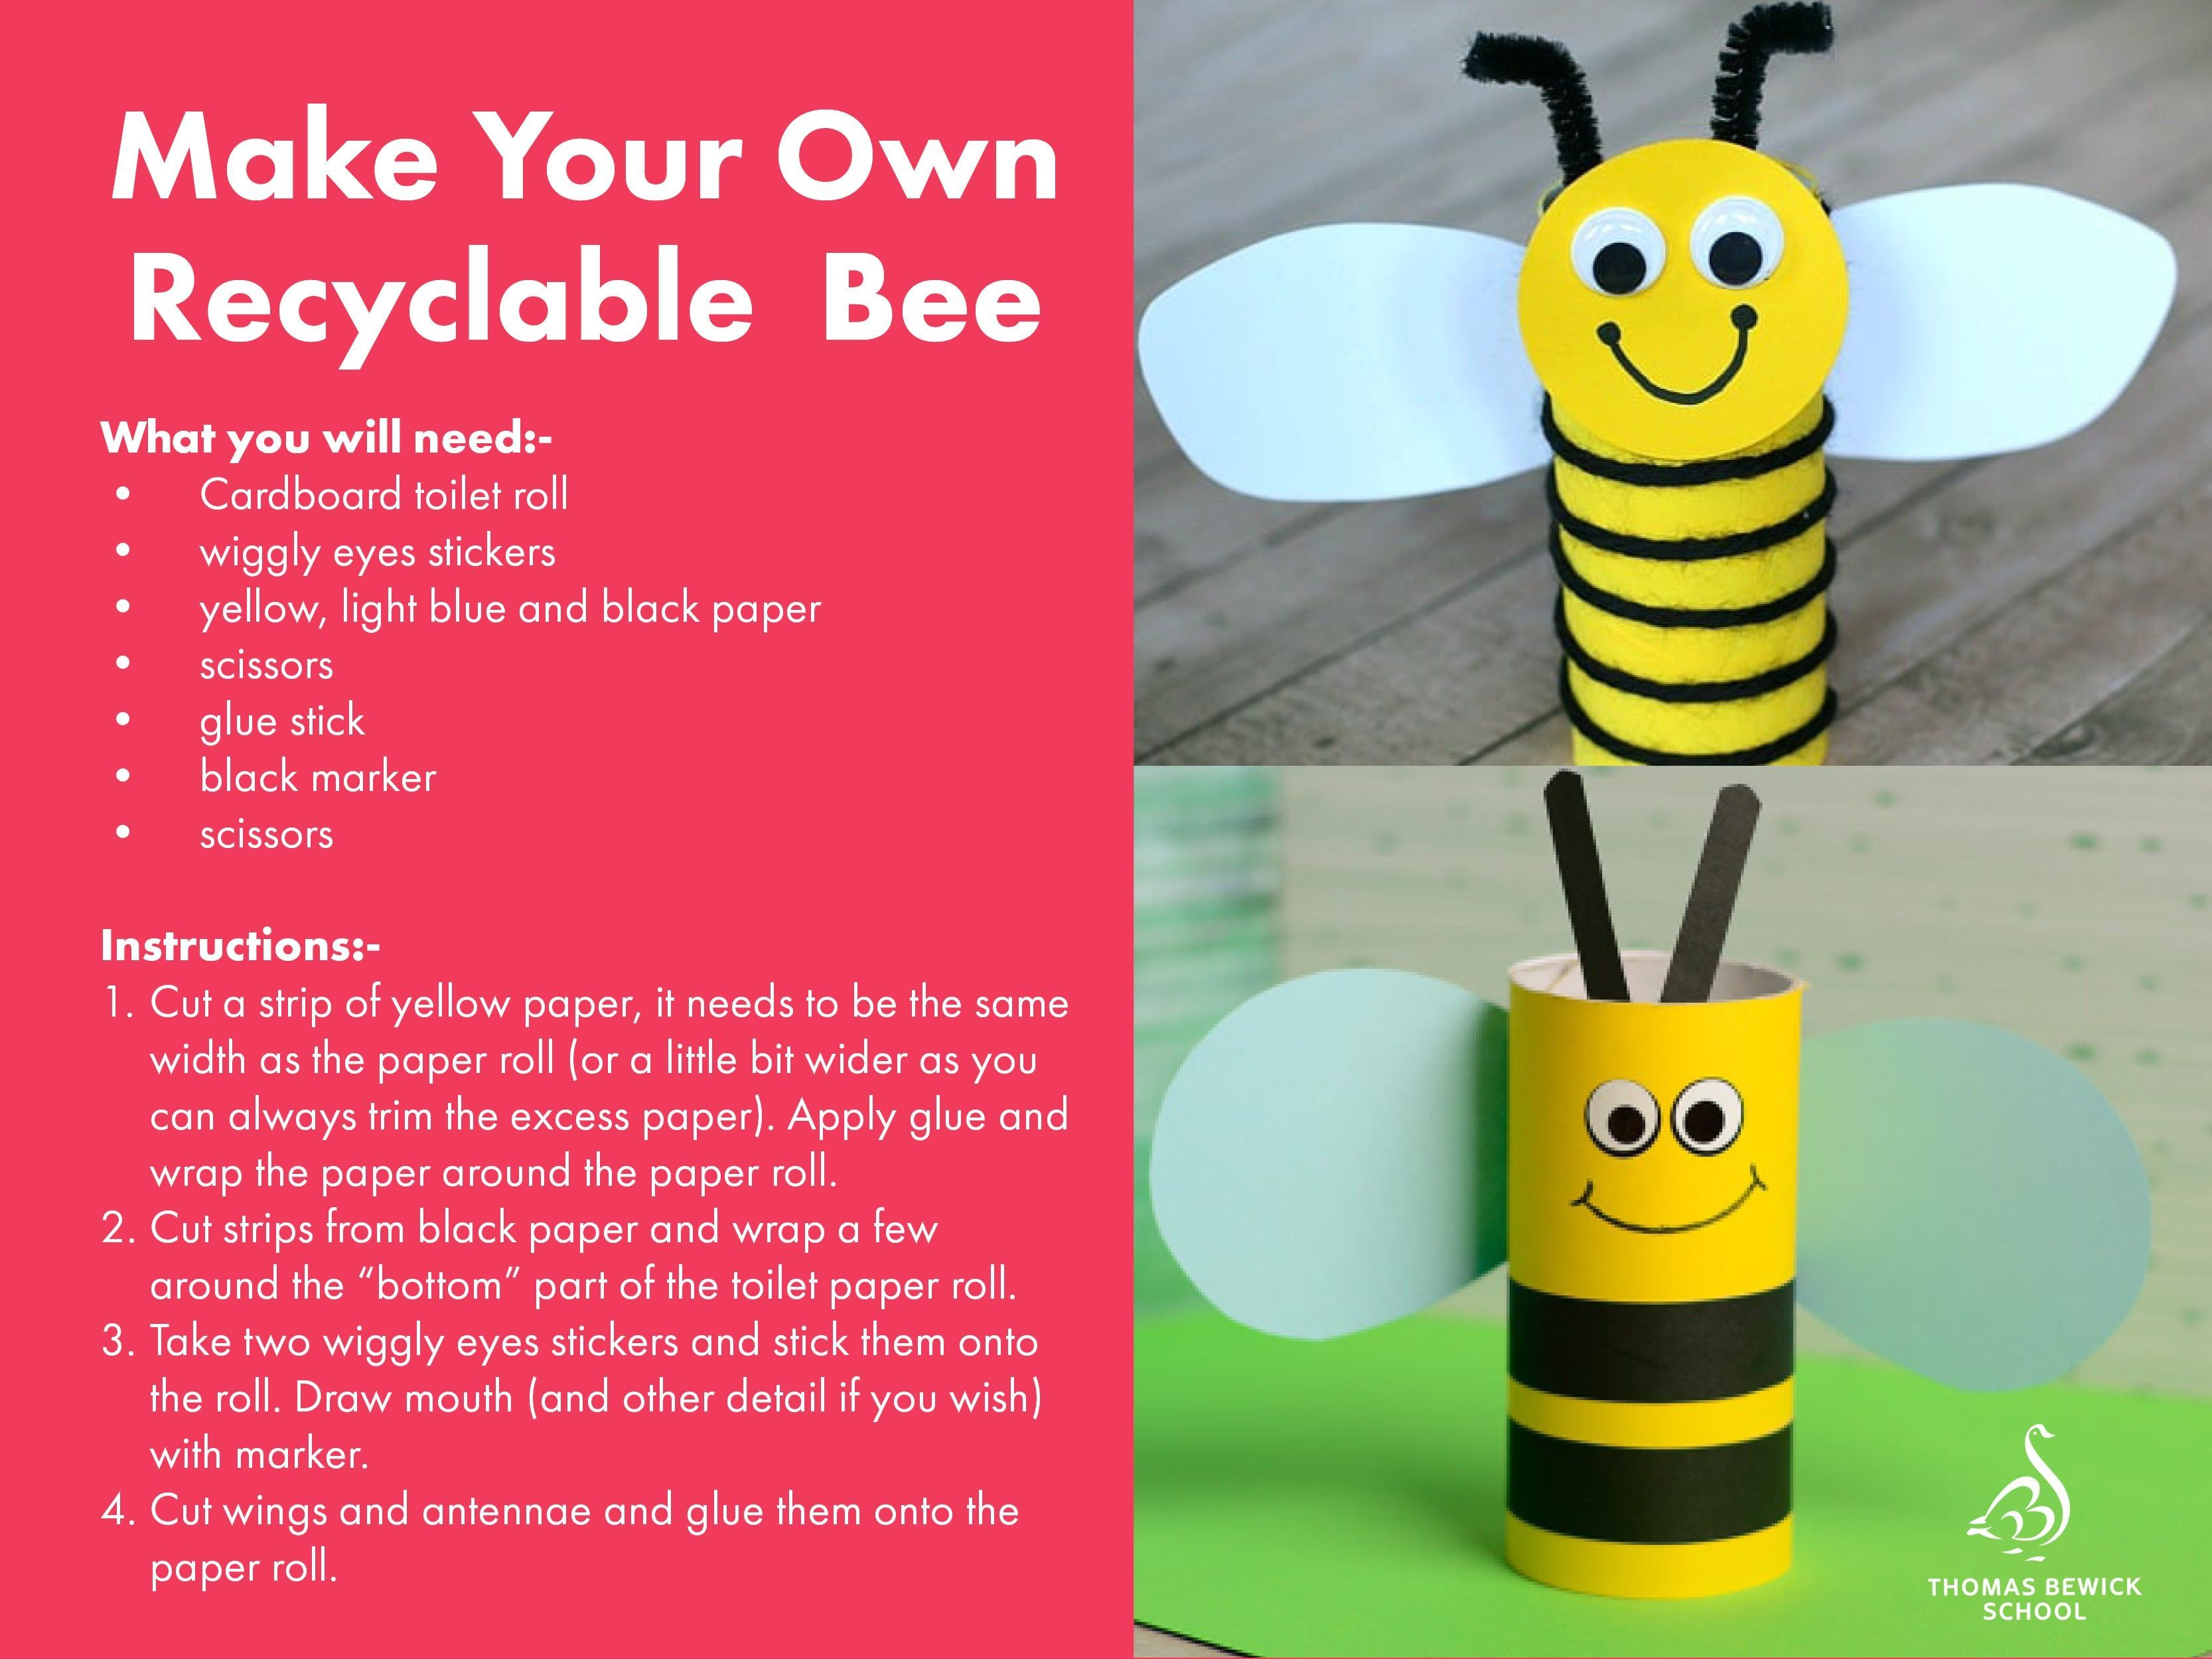 Make Your Own Recyclable Bee